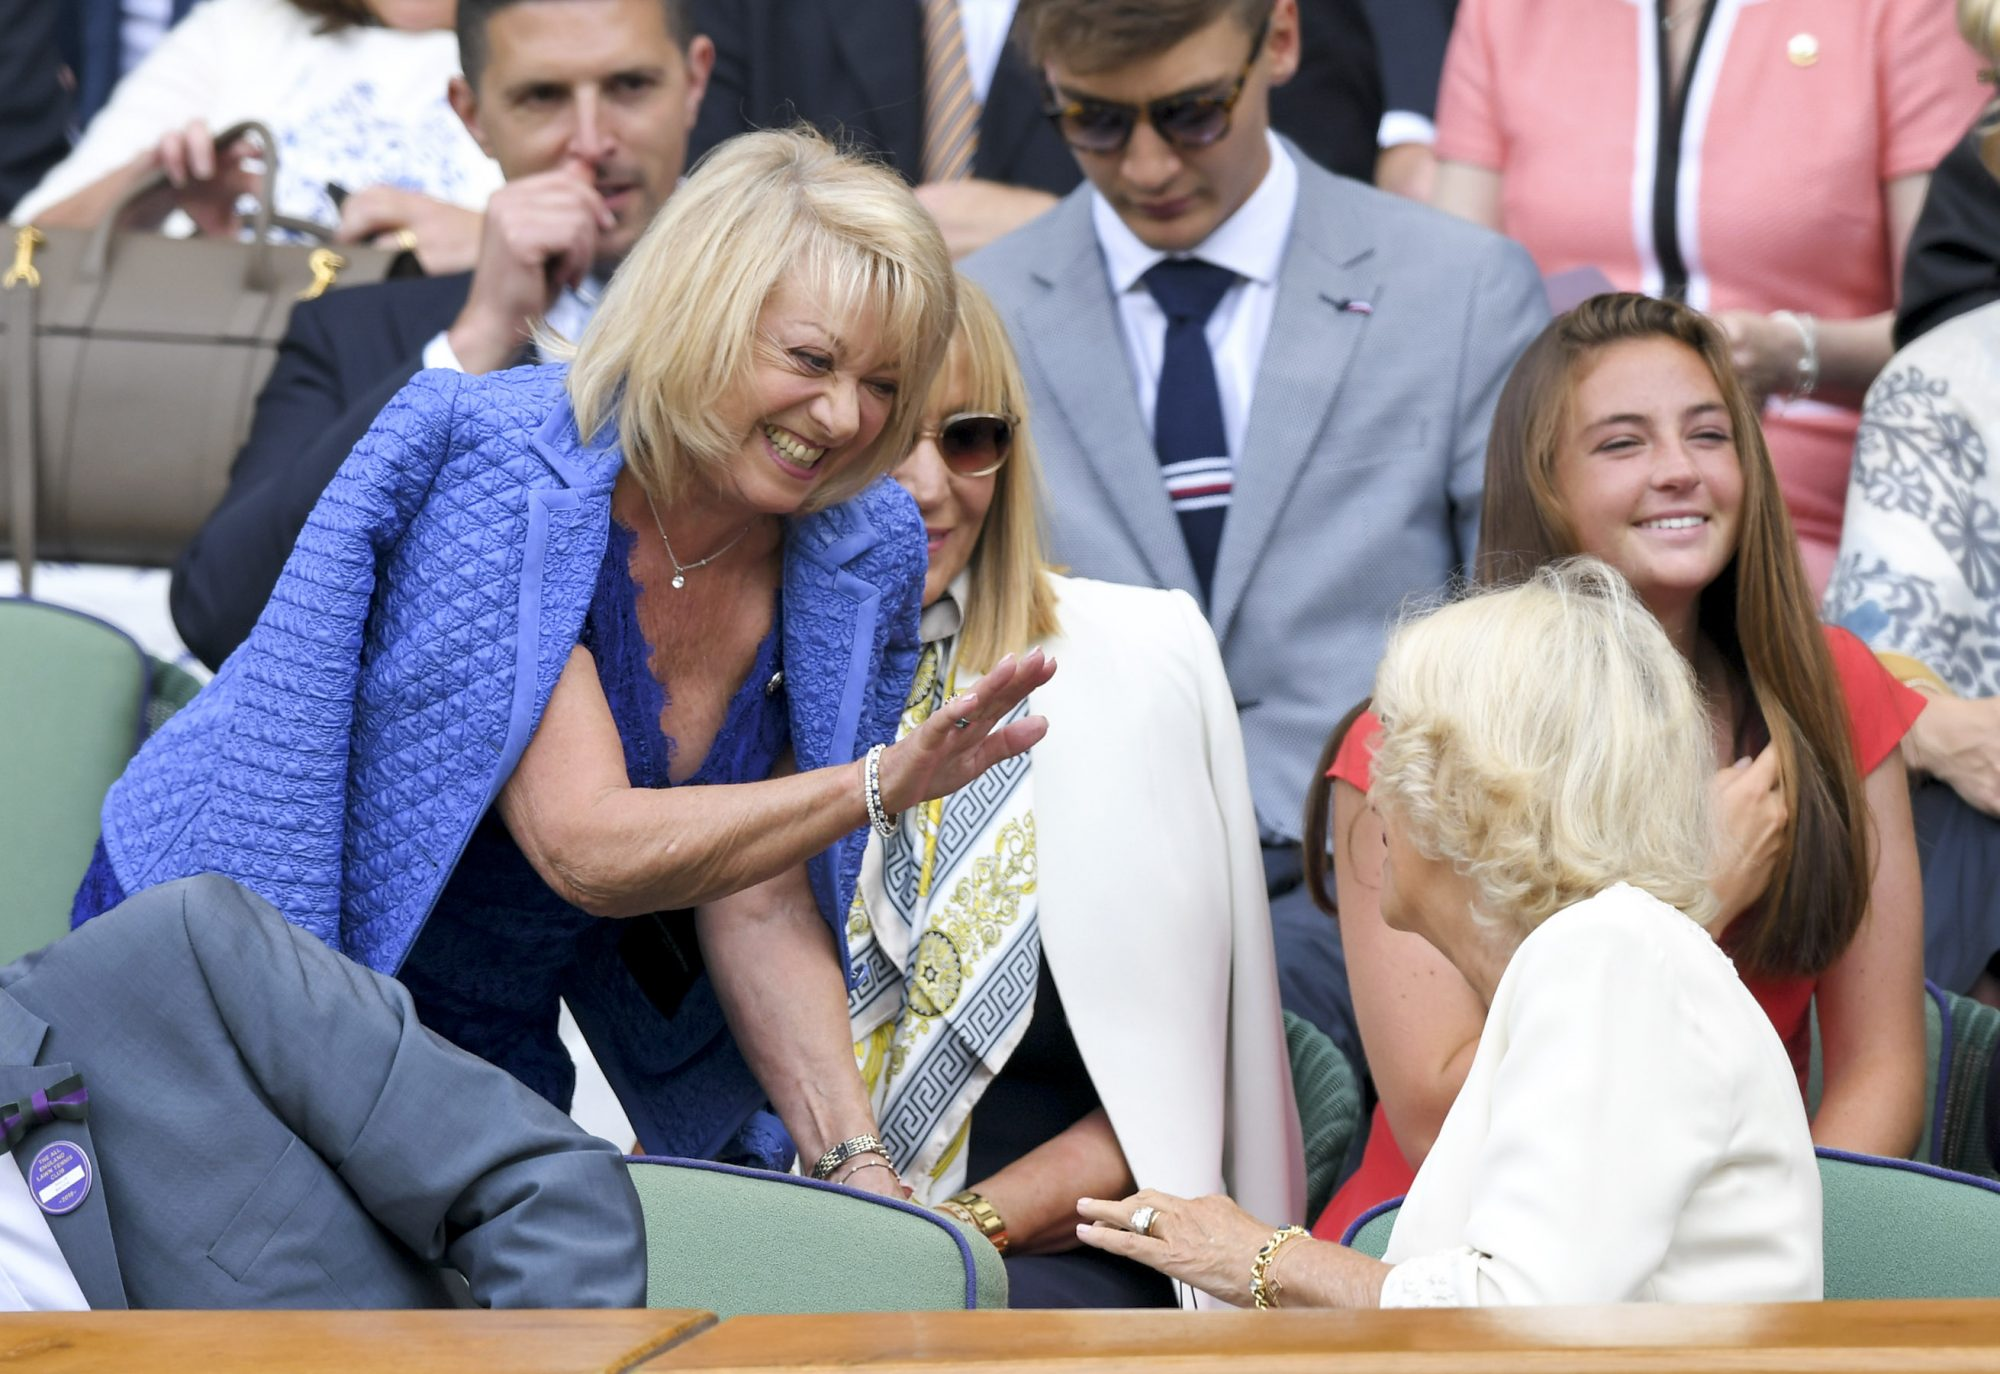 LONDON, ENGLAND - JULY 10: Elaine Paige and Camilla, Duchess of Cornwall attend day nine of the Wimbledon Tennis Championships at All England Lawn Tennis and Croquet Club on July 10, 2019 in London, England. (Photo by Karwai Tang/Getty Images)